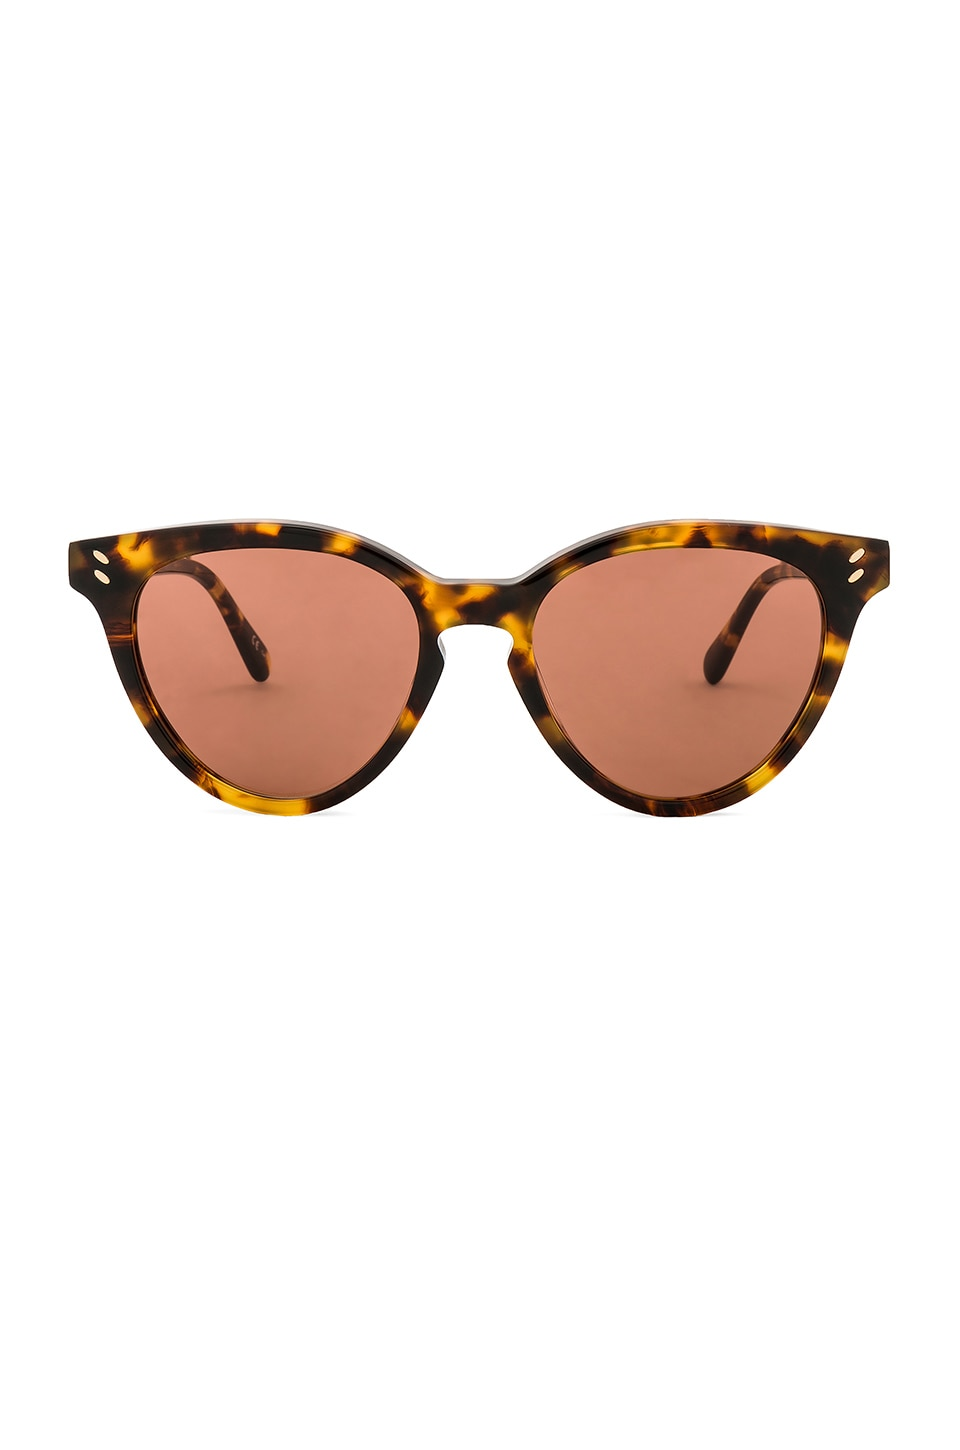 Stella McCartney LUNETTES DE SOLEIL ROUND CAT EYE ACETATE